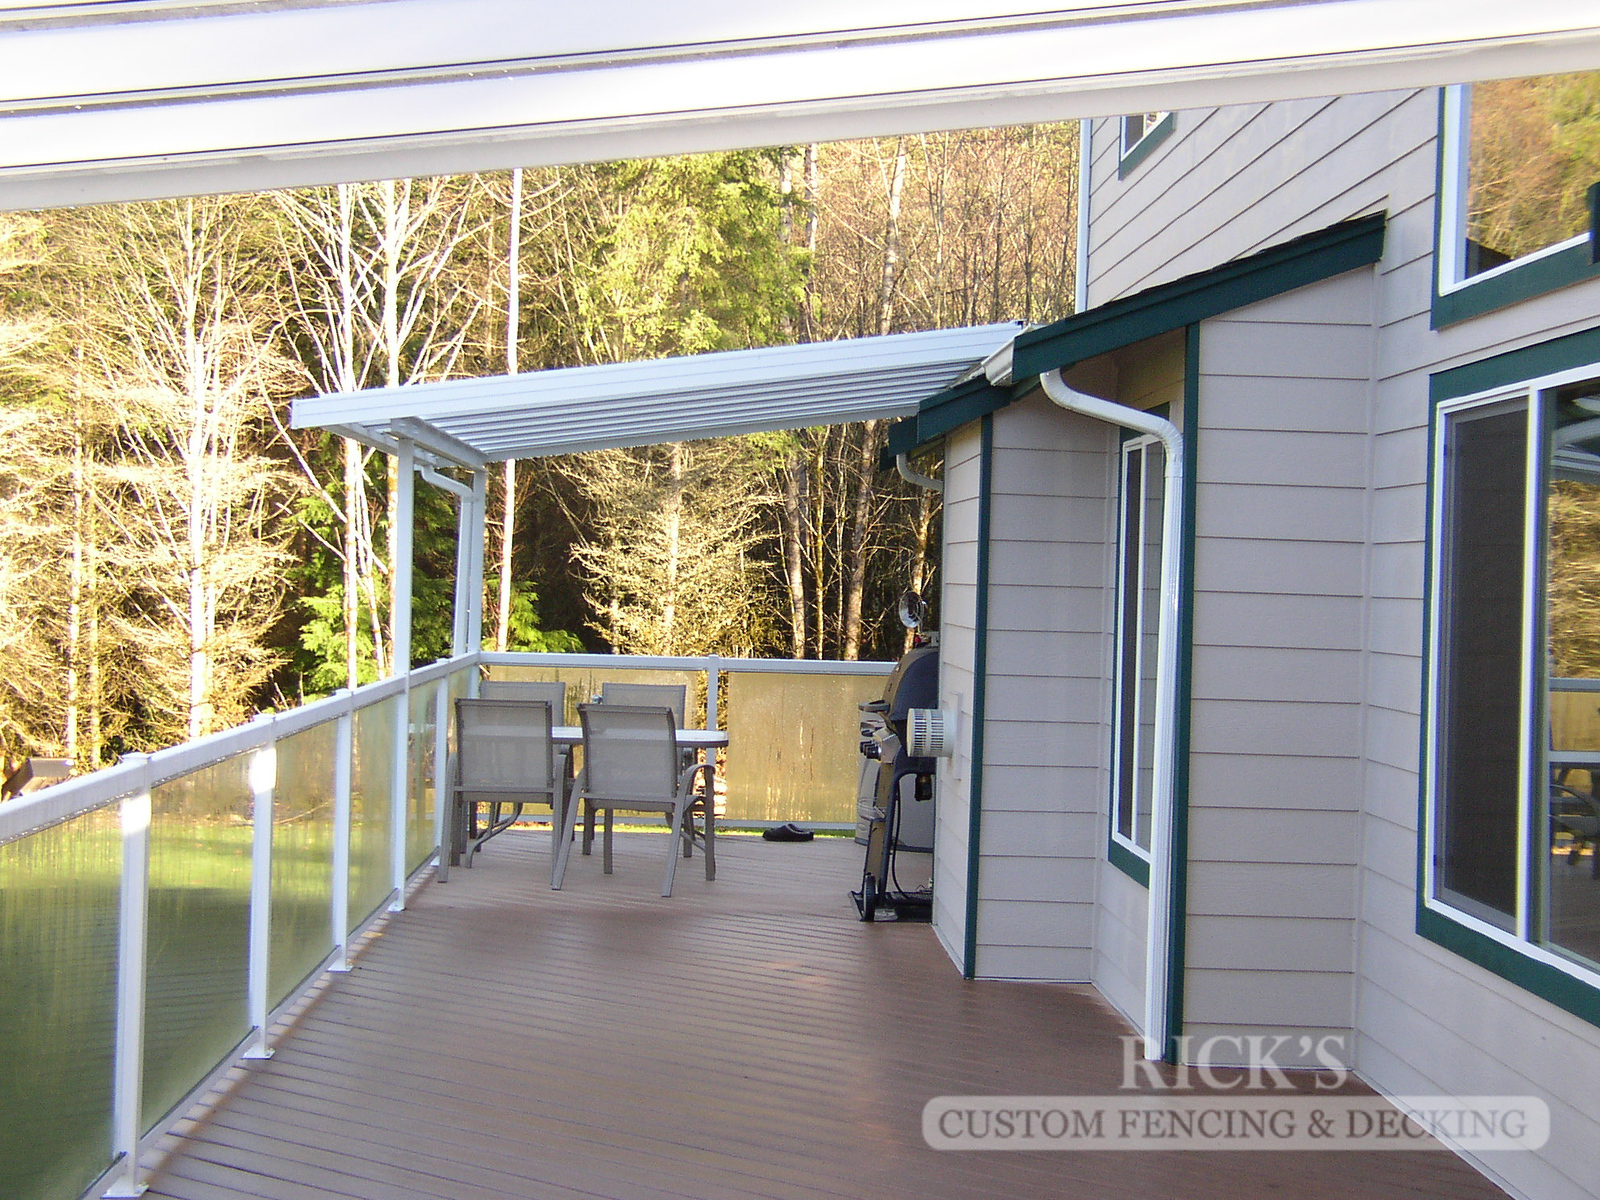 5062 - Acrylite Patio Cover